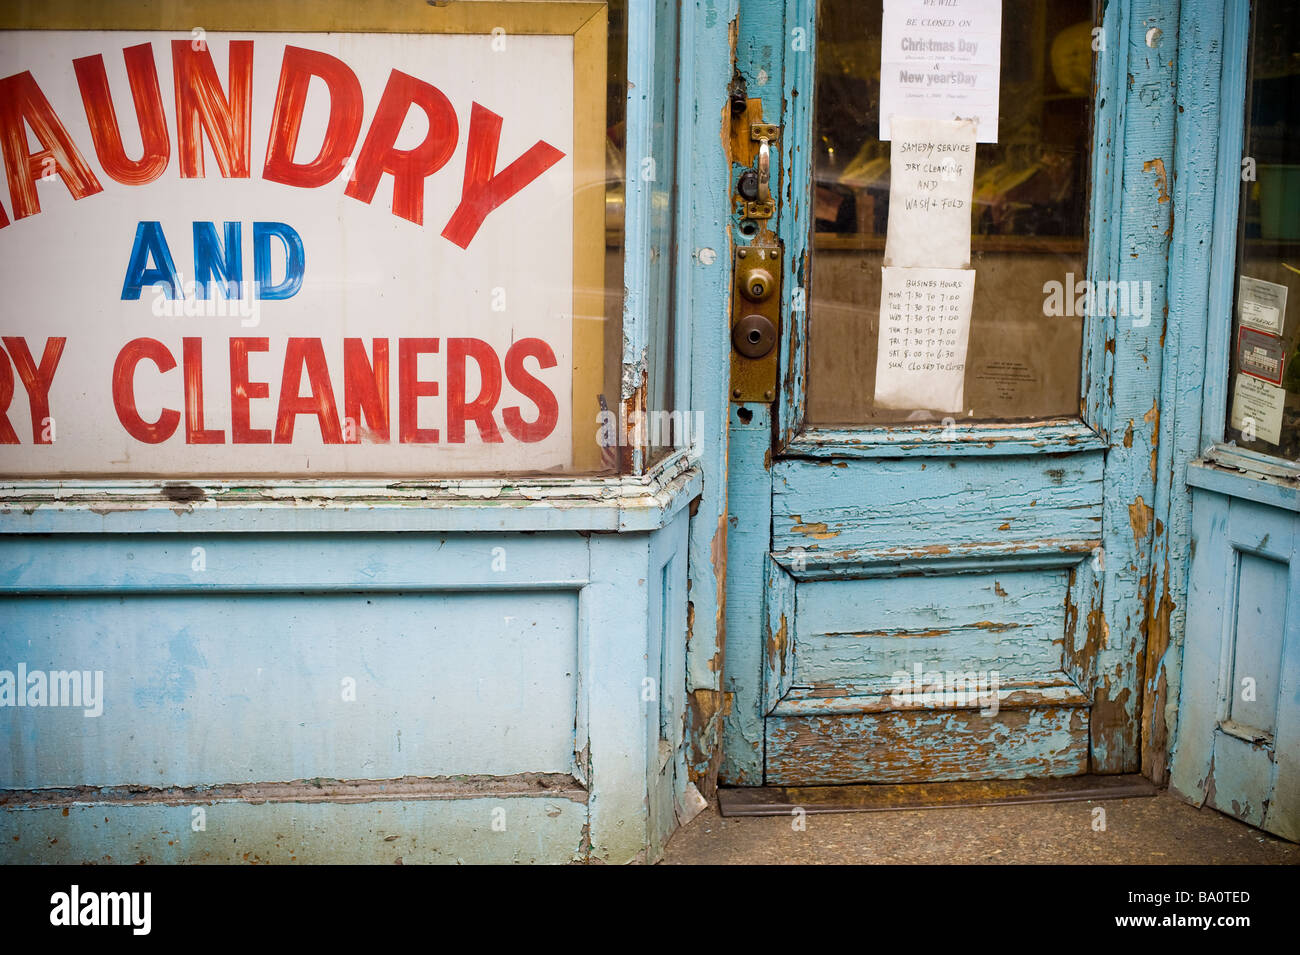 Dry Cleaners New York Stock Photos & Dry Cleaners New York Stock ...